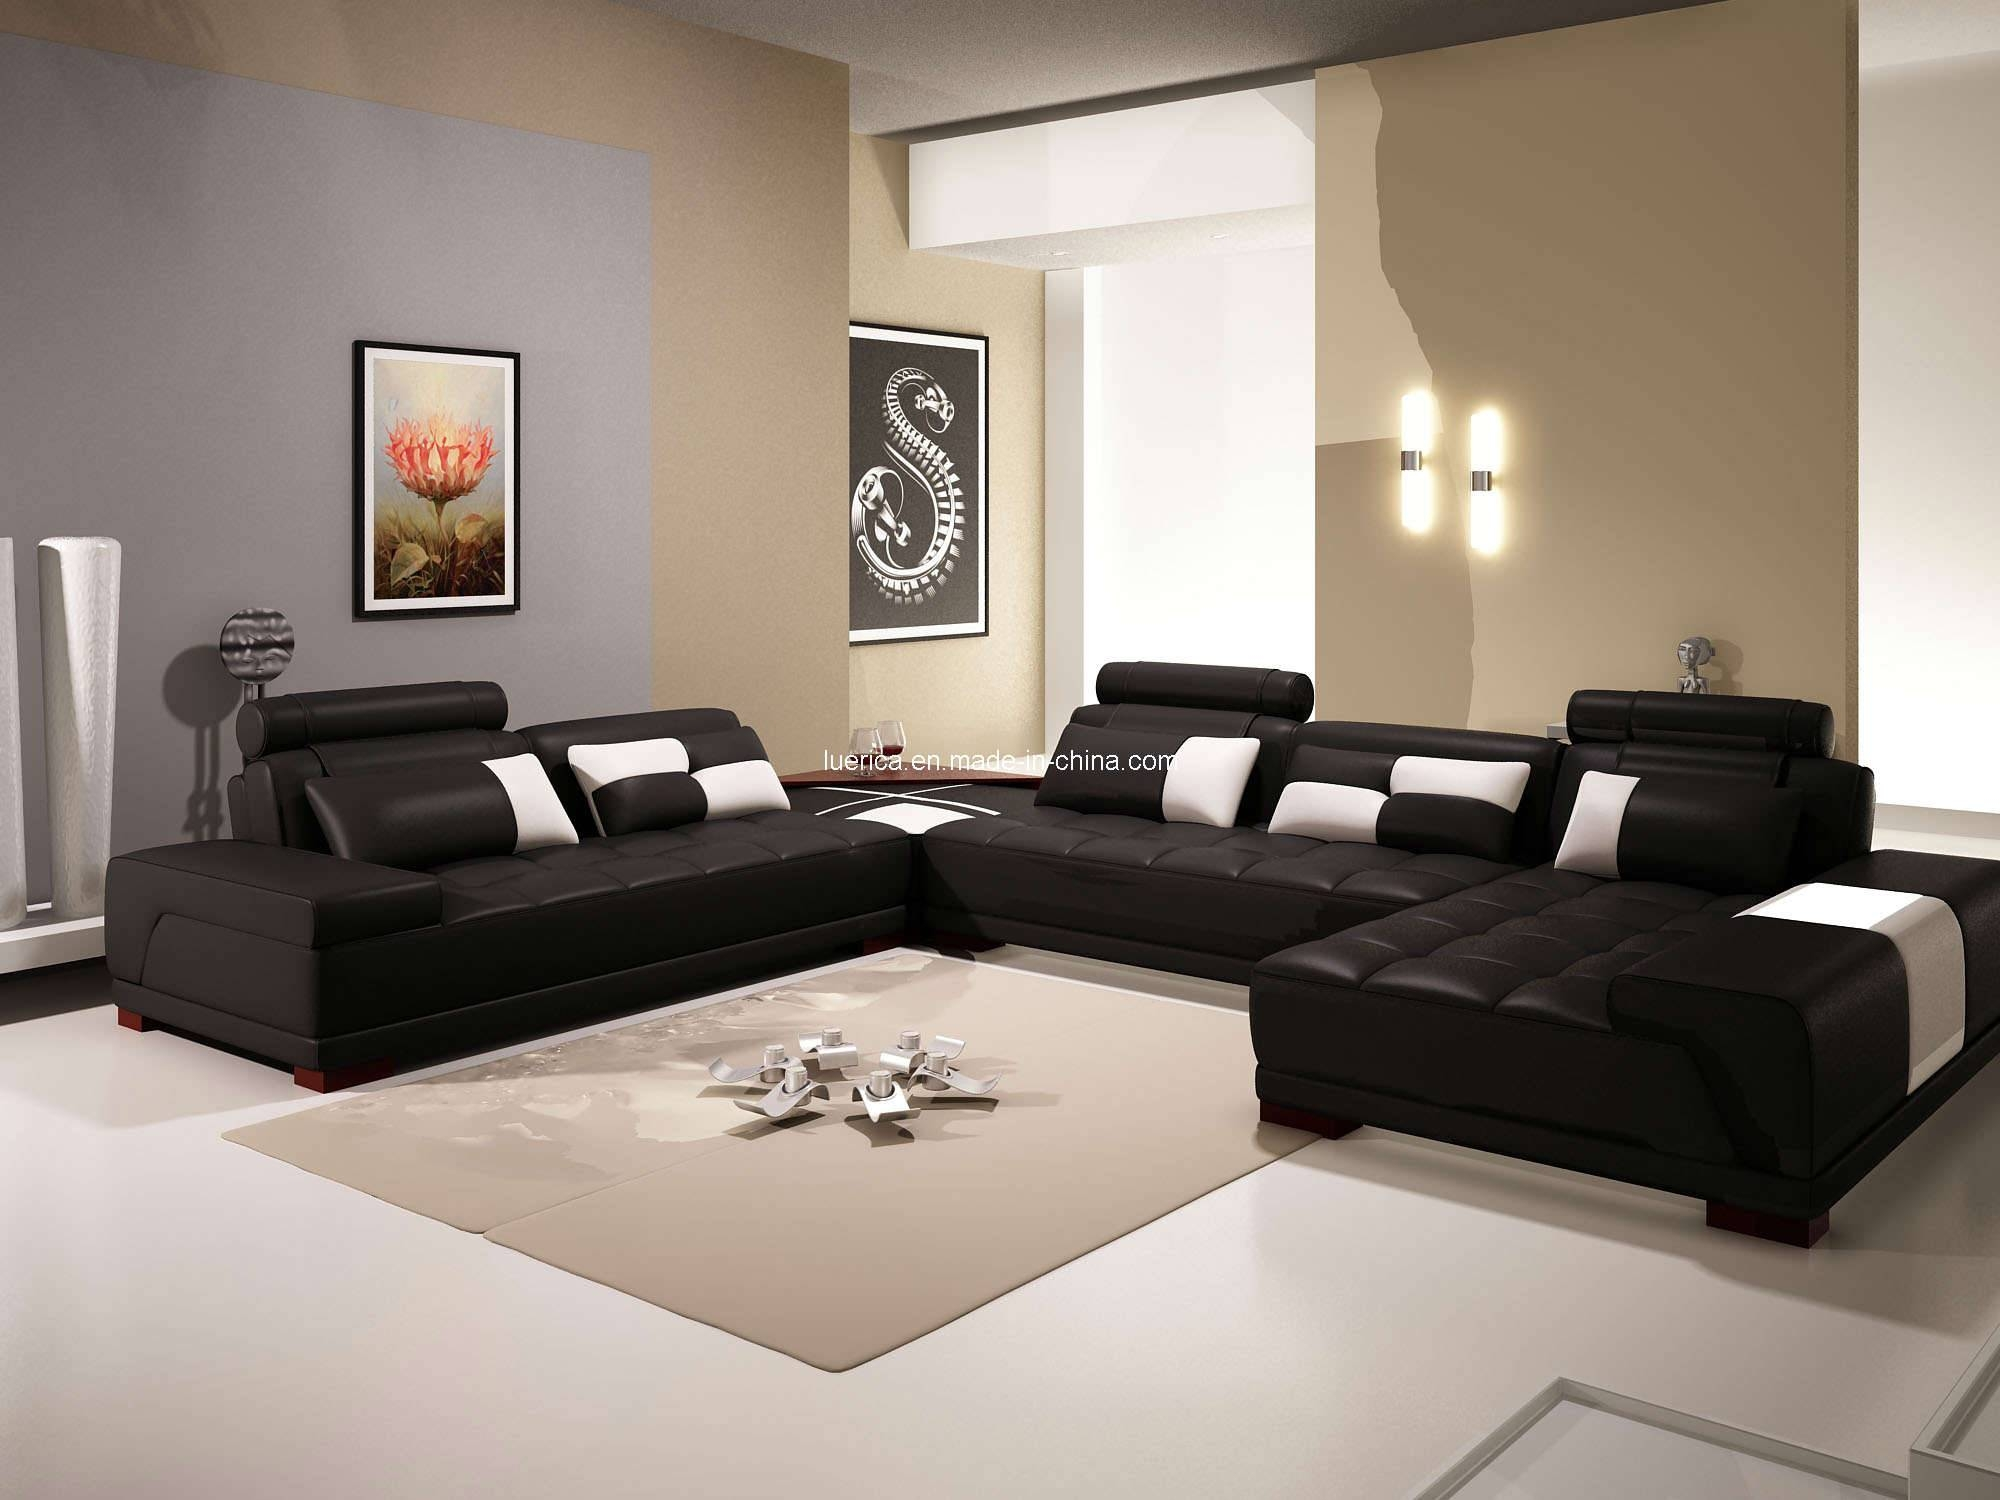 Furniture: Elegant Leather Cheap Sectional Sofas In Black On White regarding Black Sectional Sofa for Cheap (Image 8 of 30)